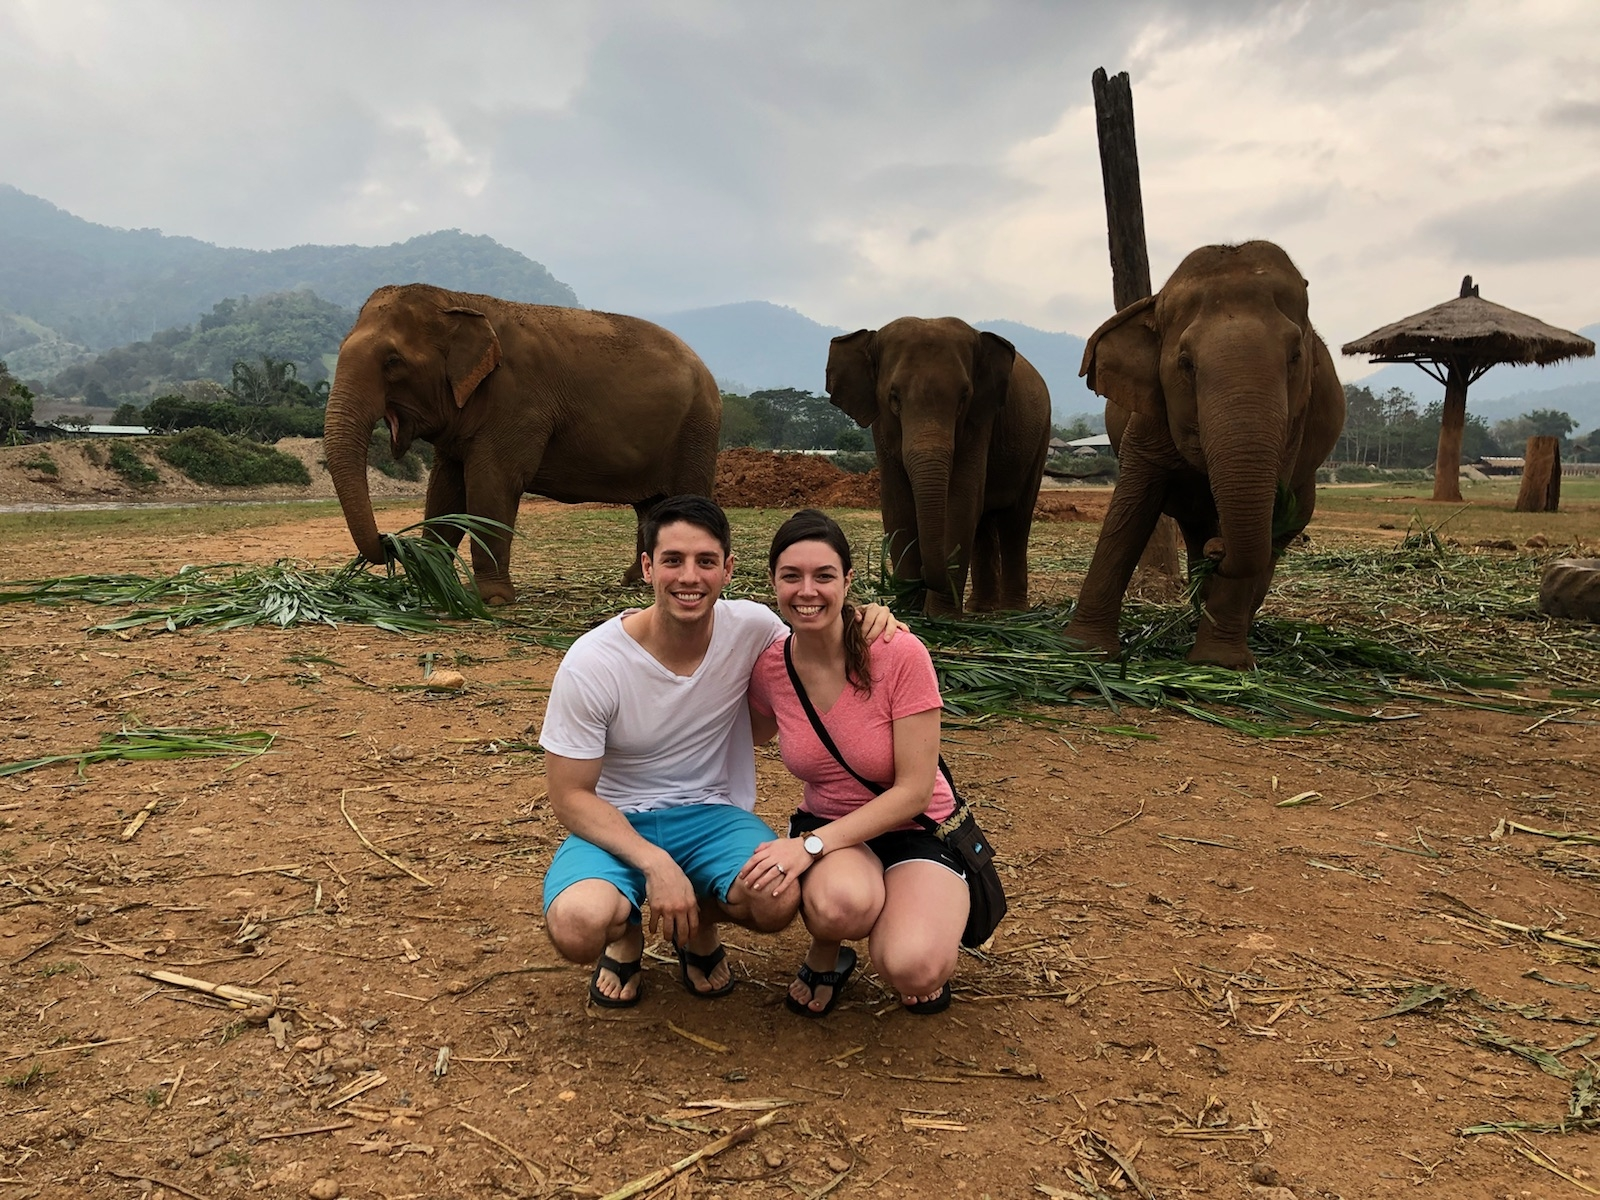 Here I am, wearing the KAVU cross-body bag at the Elephant Nature Park in Chiang Mai, Thailand. This bag has been to 14 different countries over the span of 11 years and it doesn't look like it's about to wear down yet.